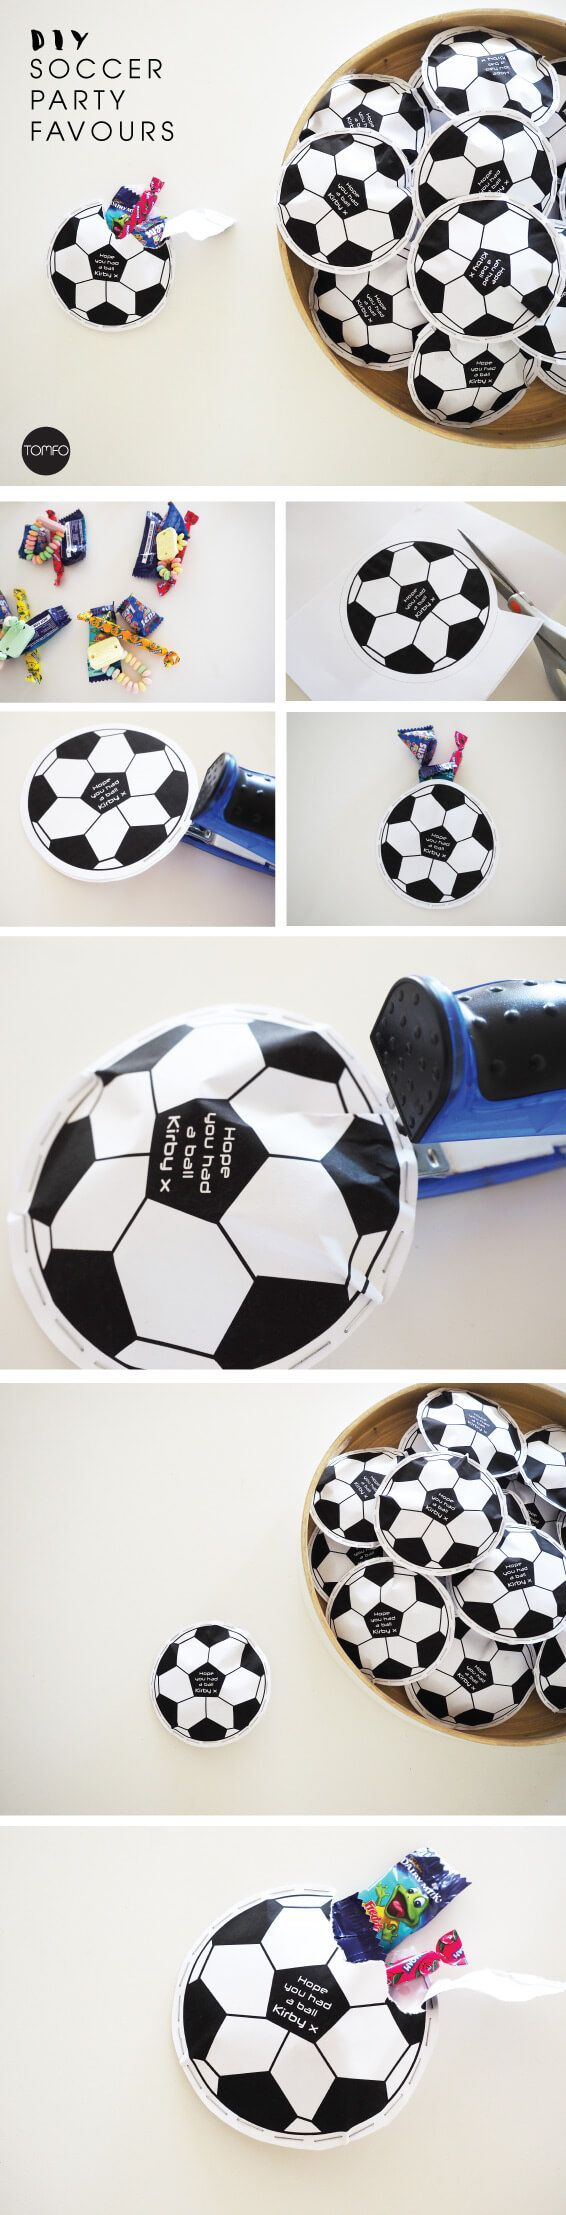 Planning a soccer party? Try these DIY Soccer Party Favours, too ...